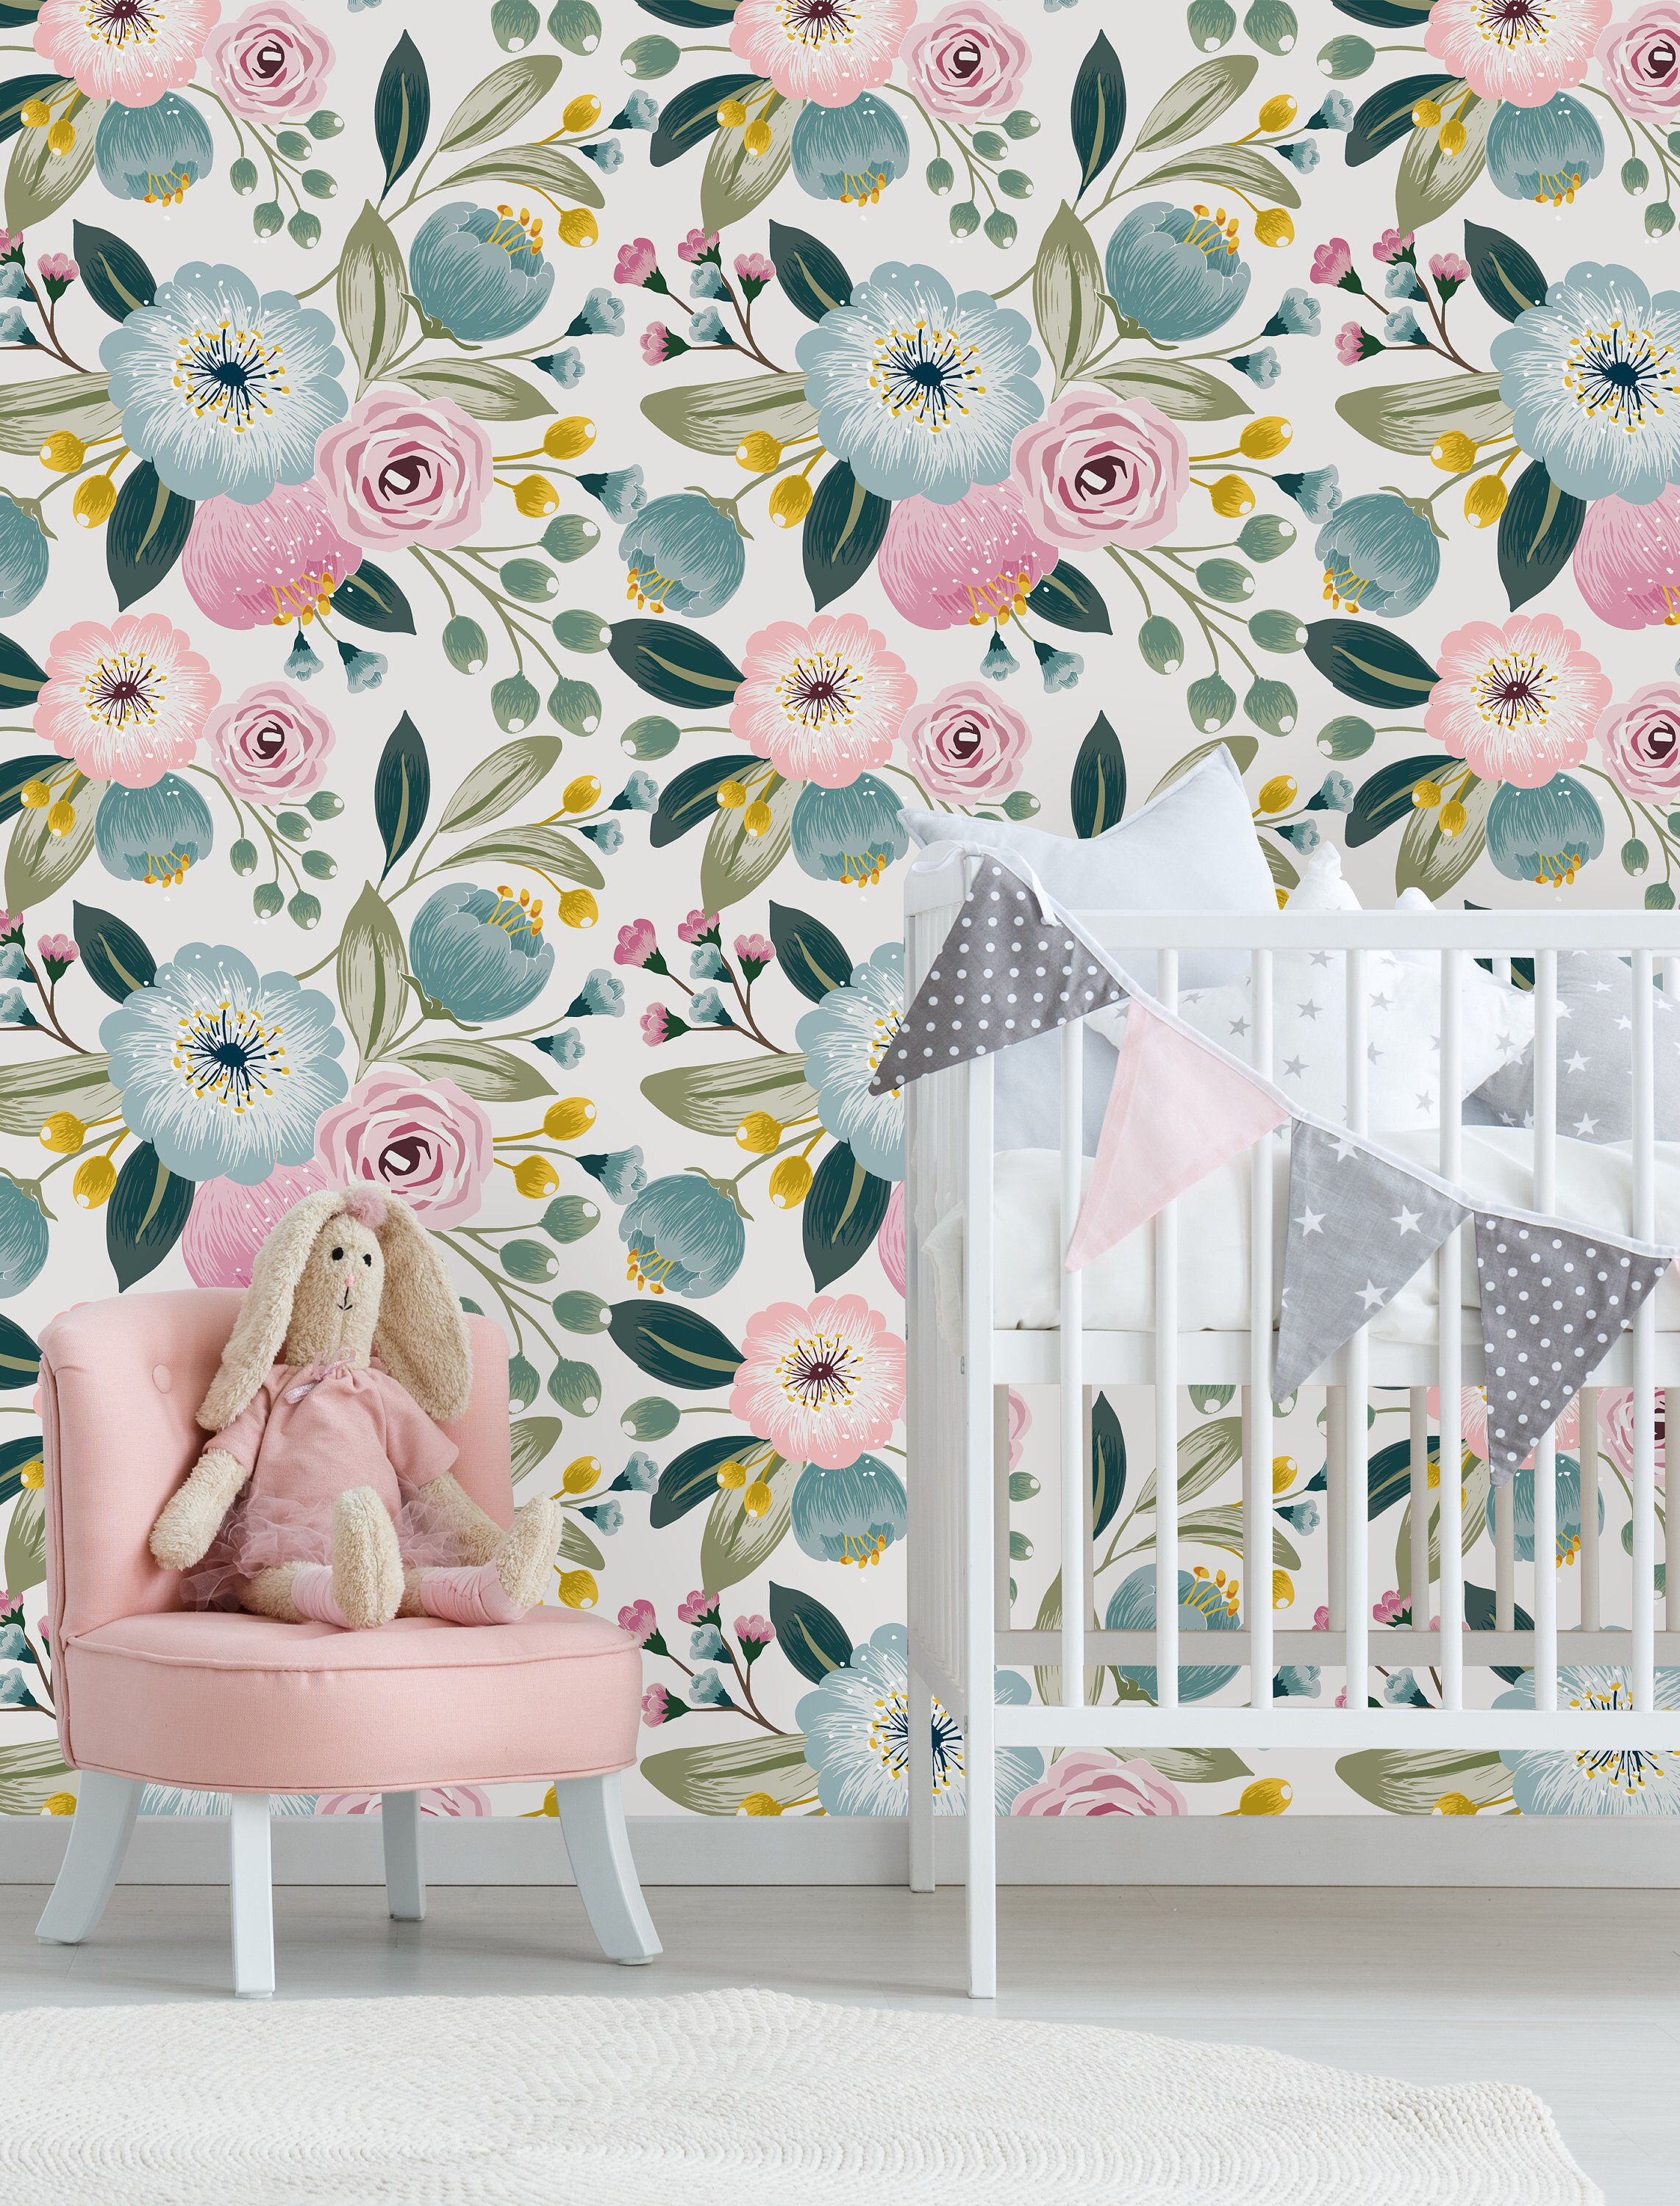 Removable Wallpaper Peel And Stick Wallpaper Self Adhesive Etsy Pastel Flower Nursery Nursery Wallpaper Flower Nursery